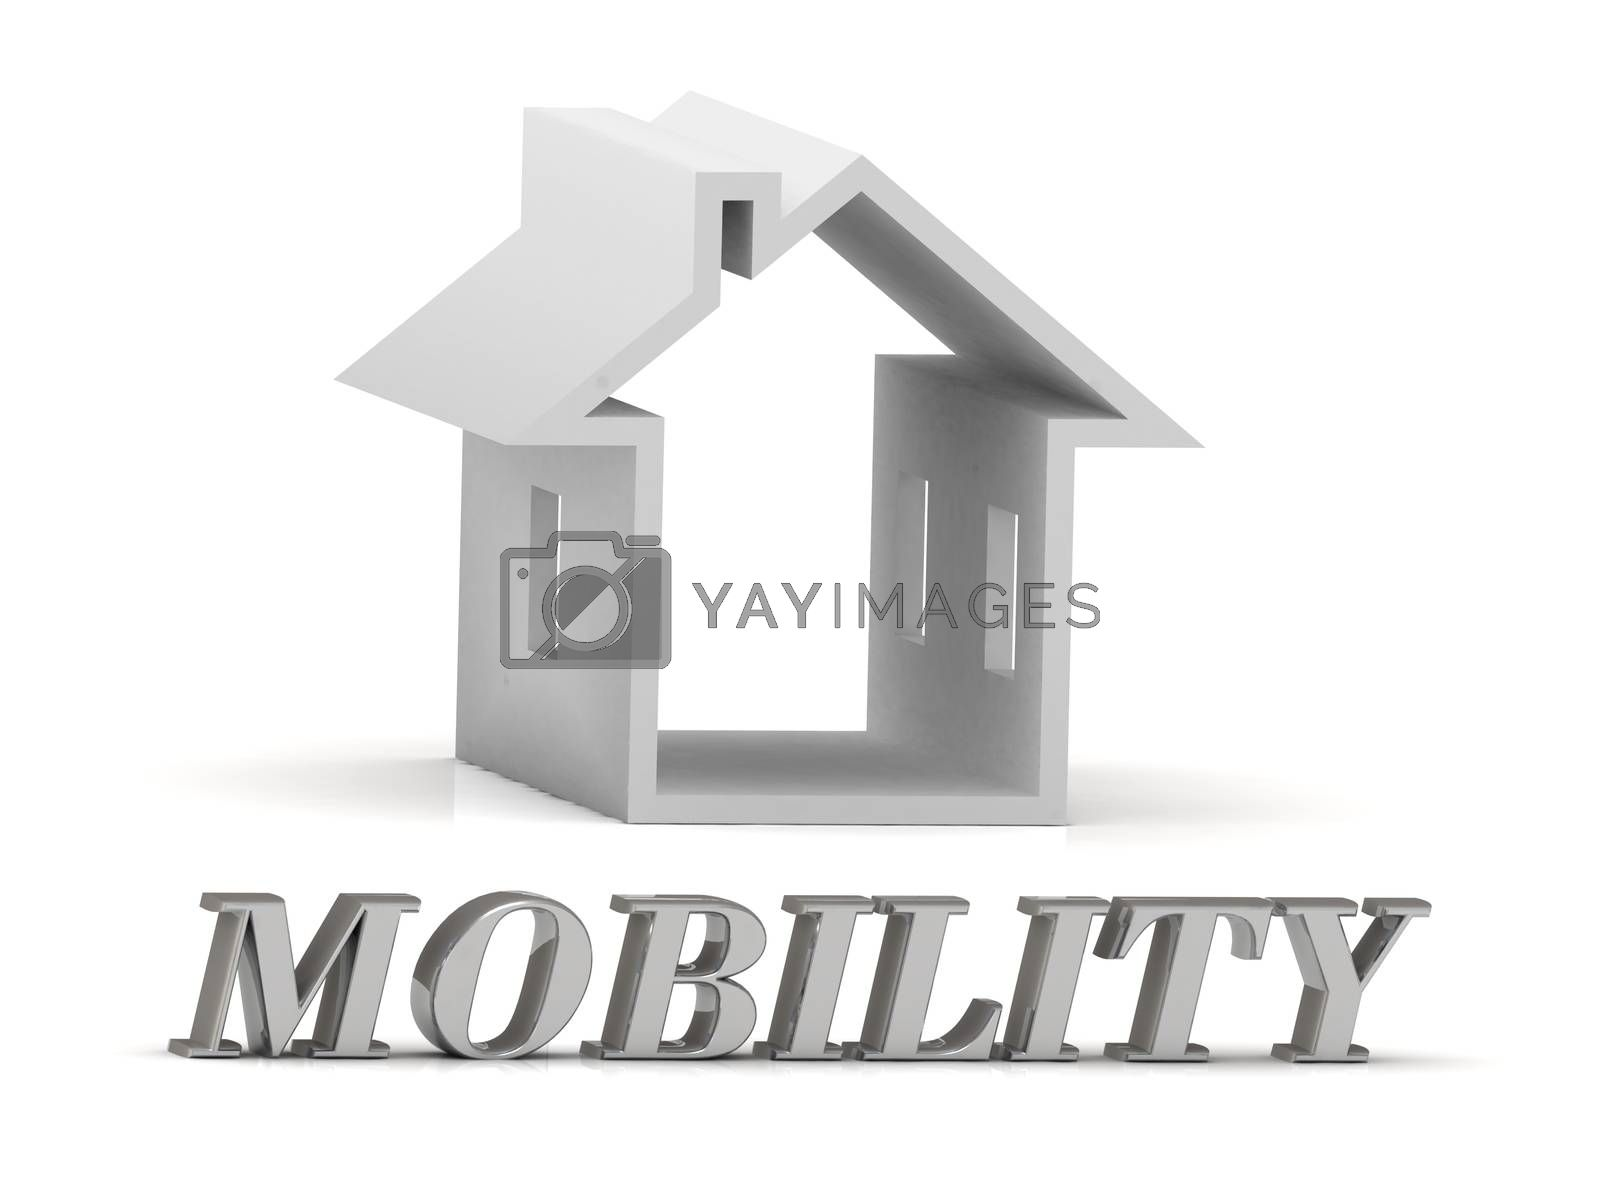 MOBILITY- inscription of silver letters and white house on white background